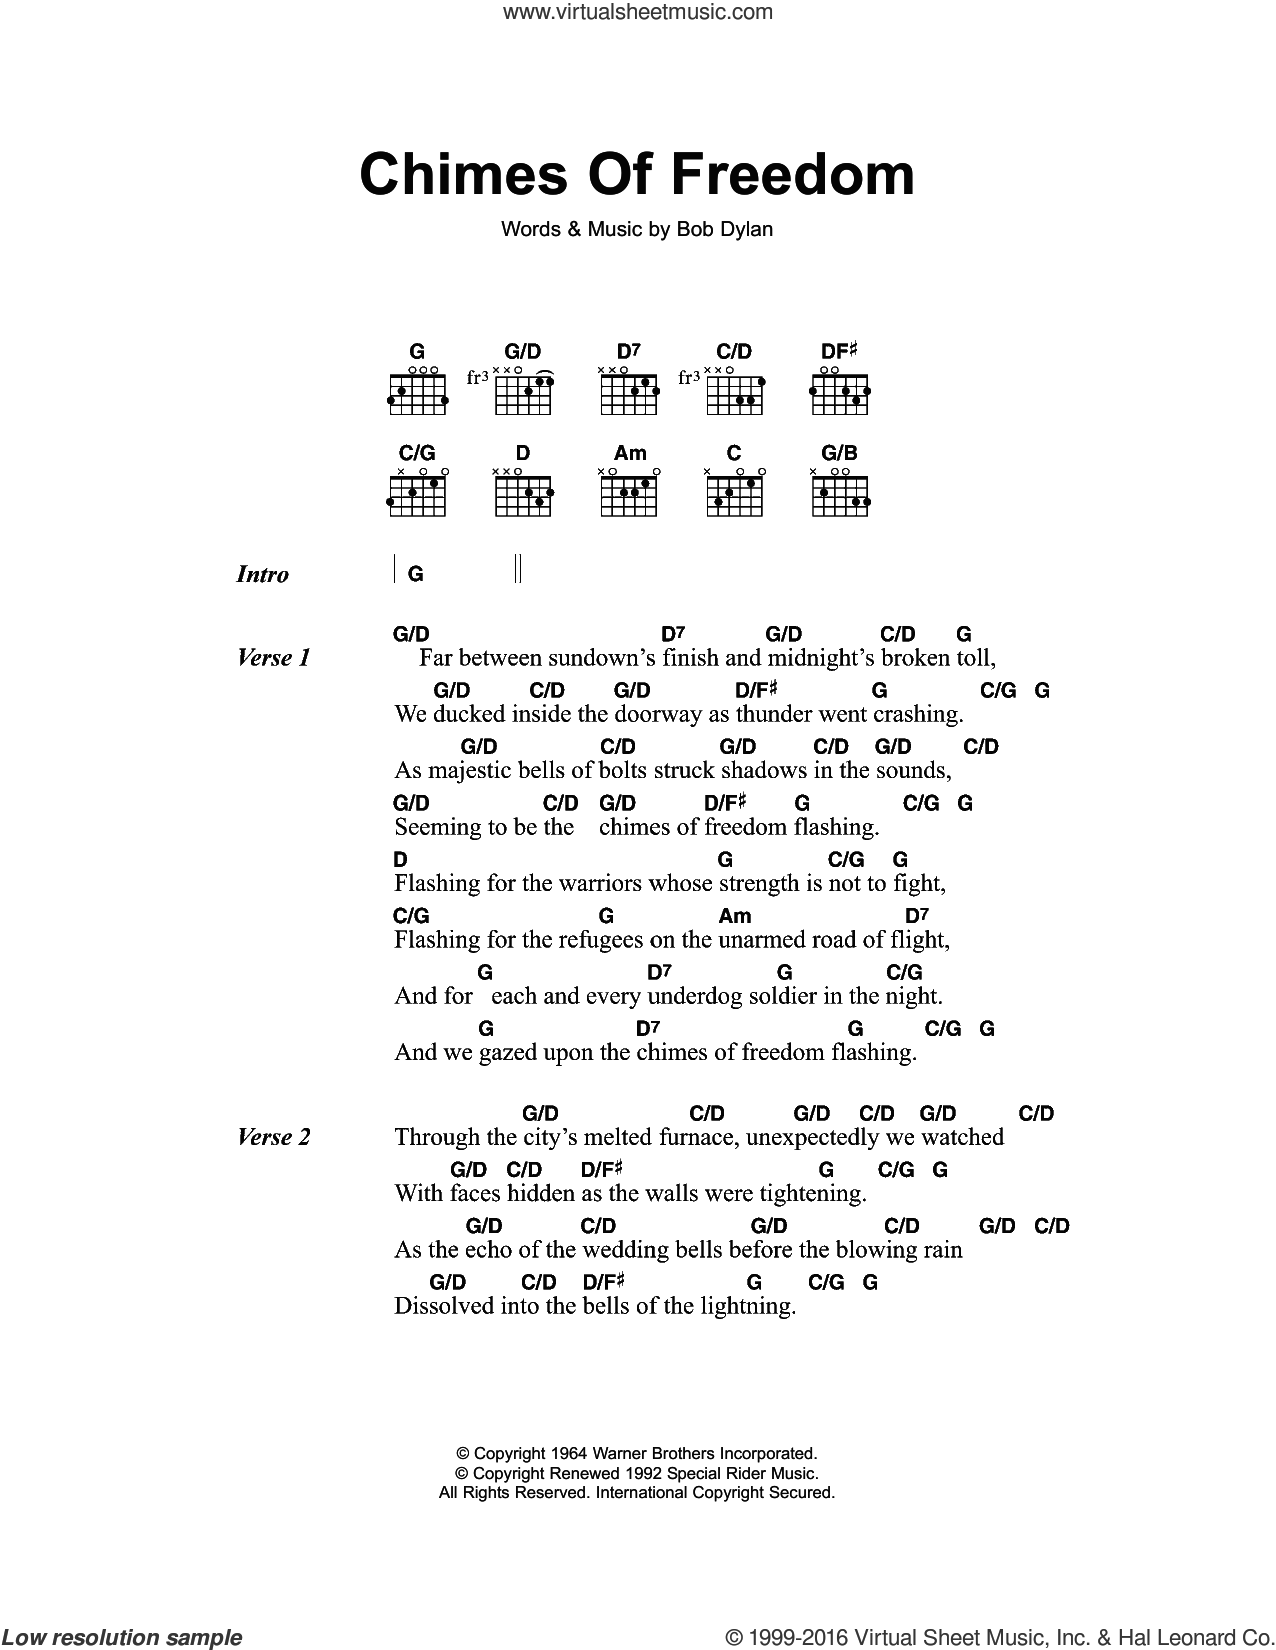 Chimes Of Freedom sheet music for guitar (chords) by Bob Dylan, intermediate skill level